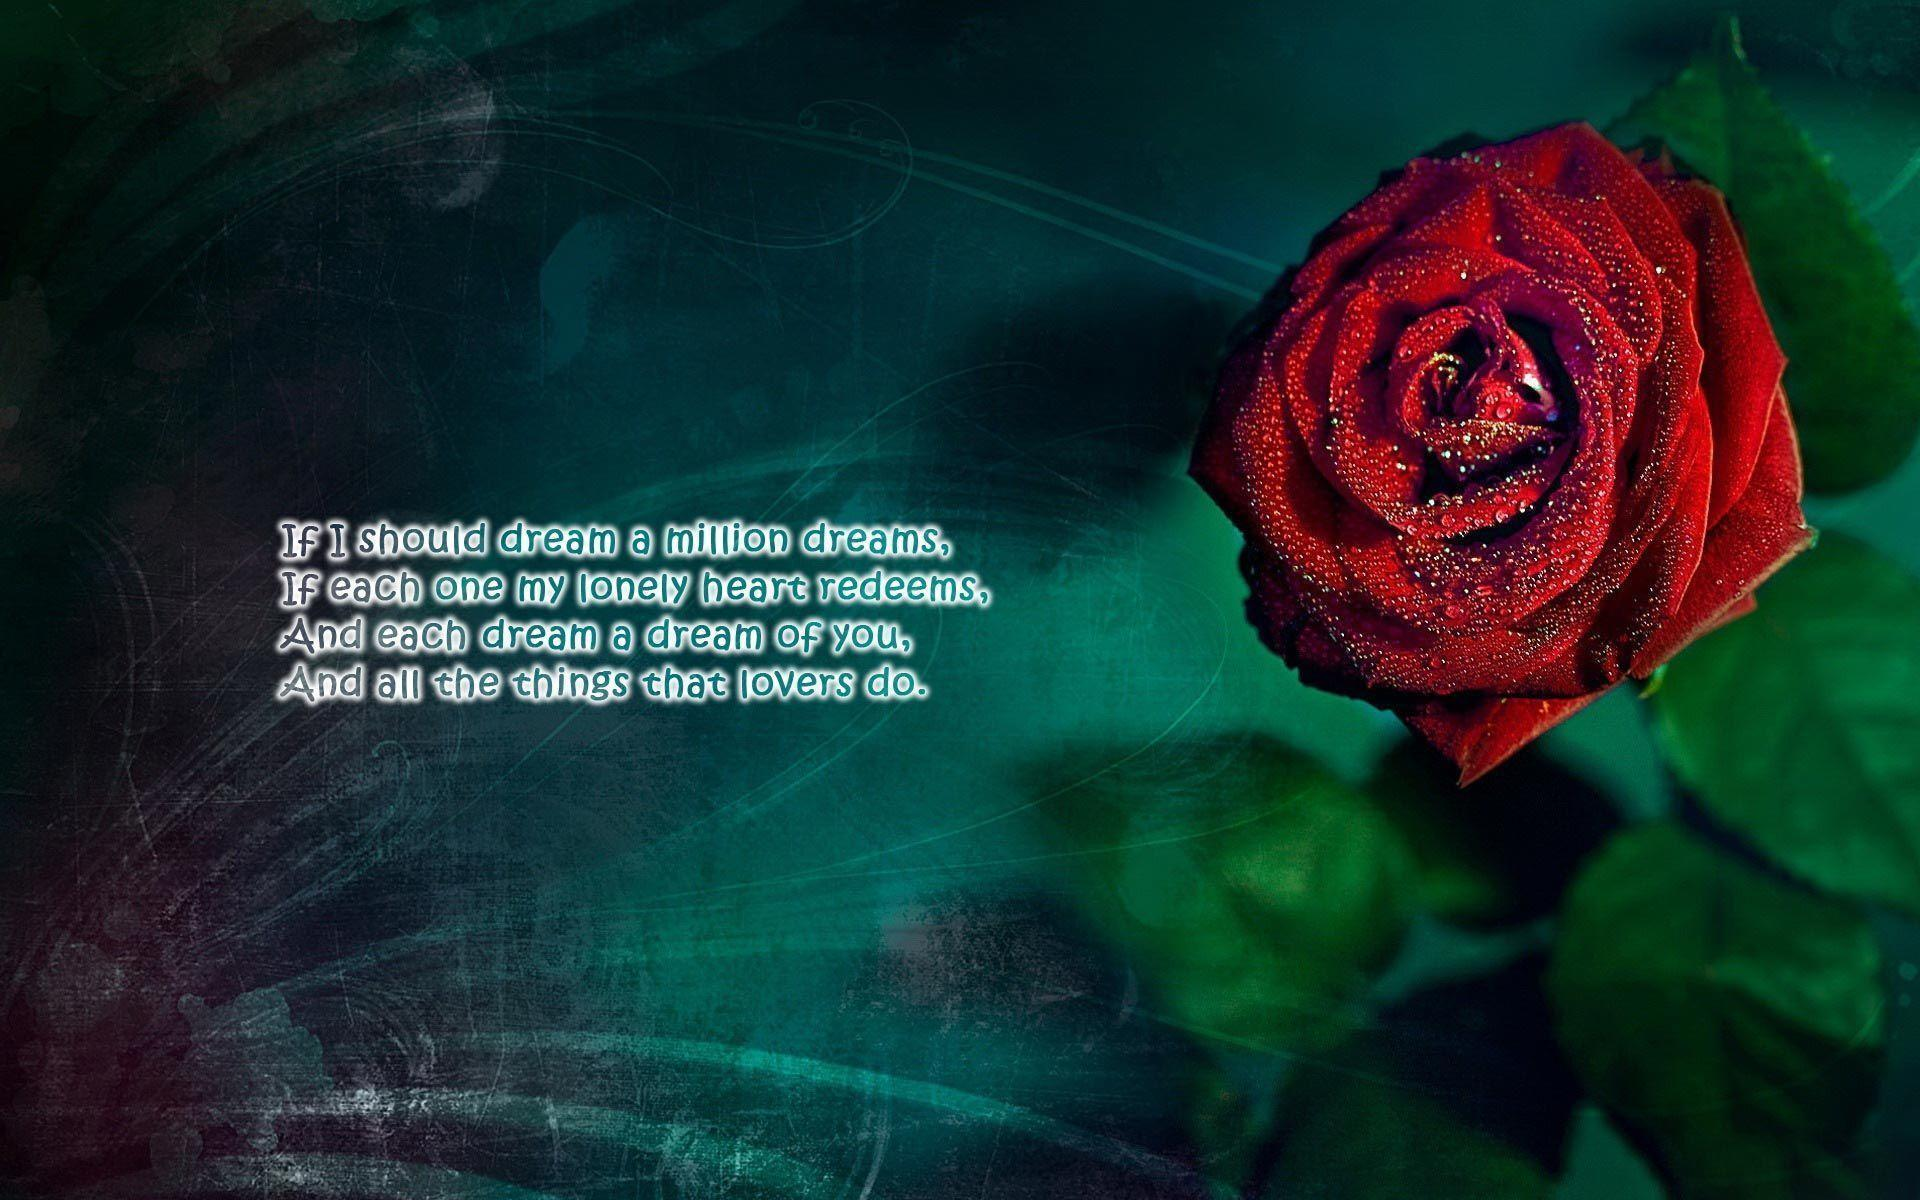 Love Wallpaper Poetry : Love Poems Wallpapers - Wallpaper cave